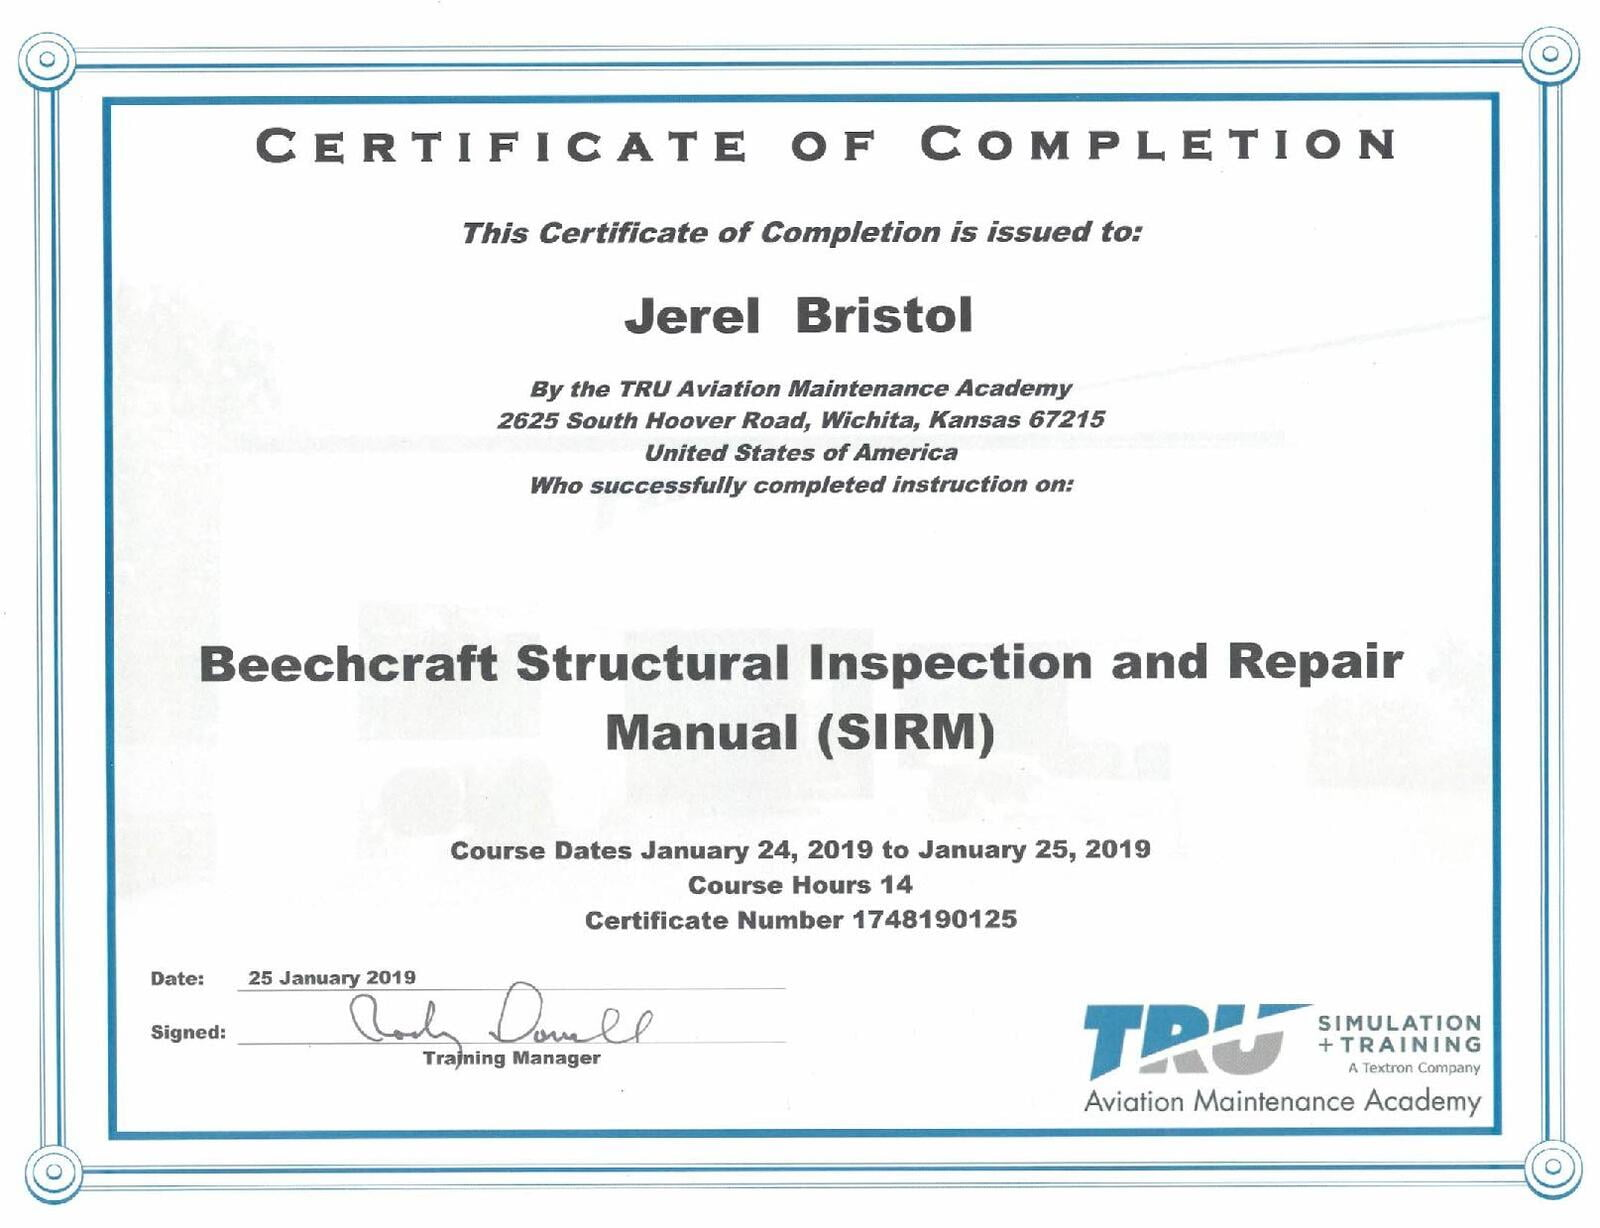 Beechcraft Structural Inspection and Repair Manual (SIRM)